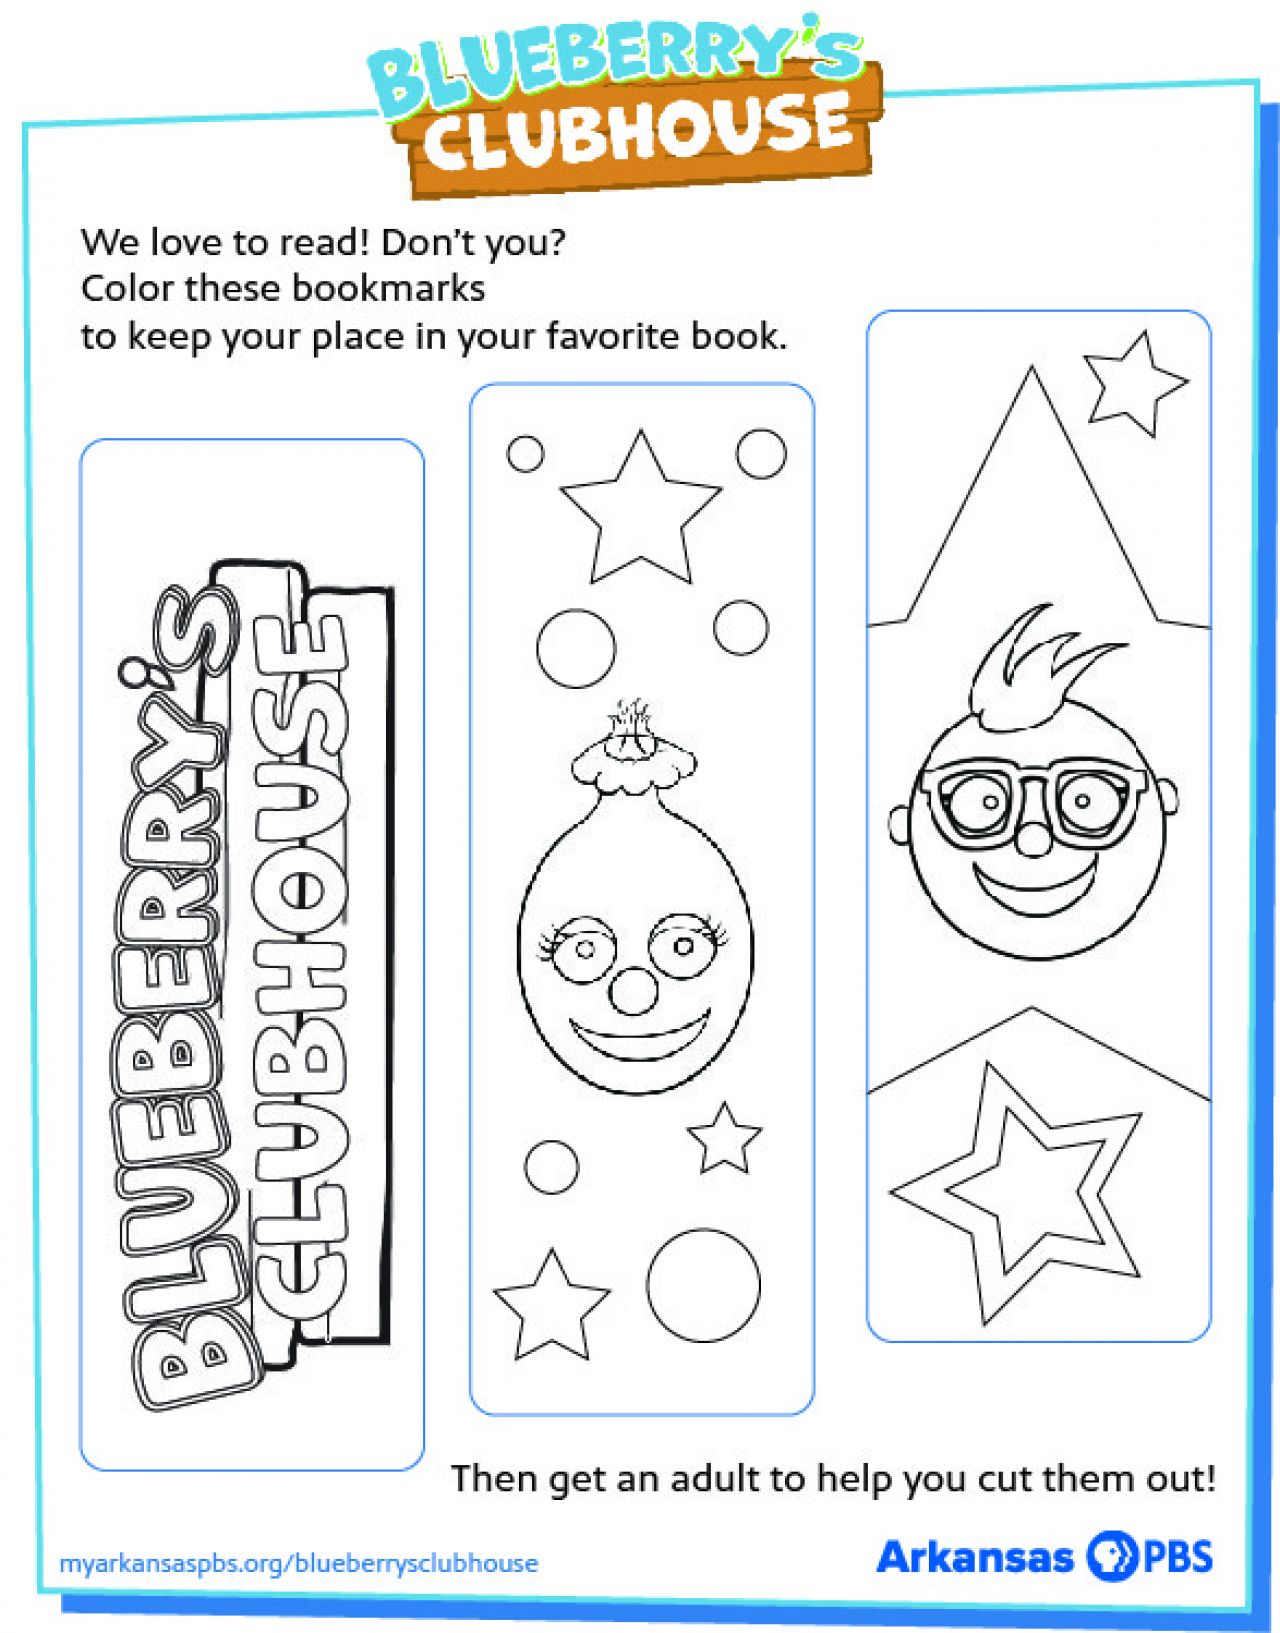 Printable bookmarks featuring black and white line drawings of the Blueberry's Clubhouse logo Juneberry and Blueberry inside a Blueberry's Clubhouse colored frame